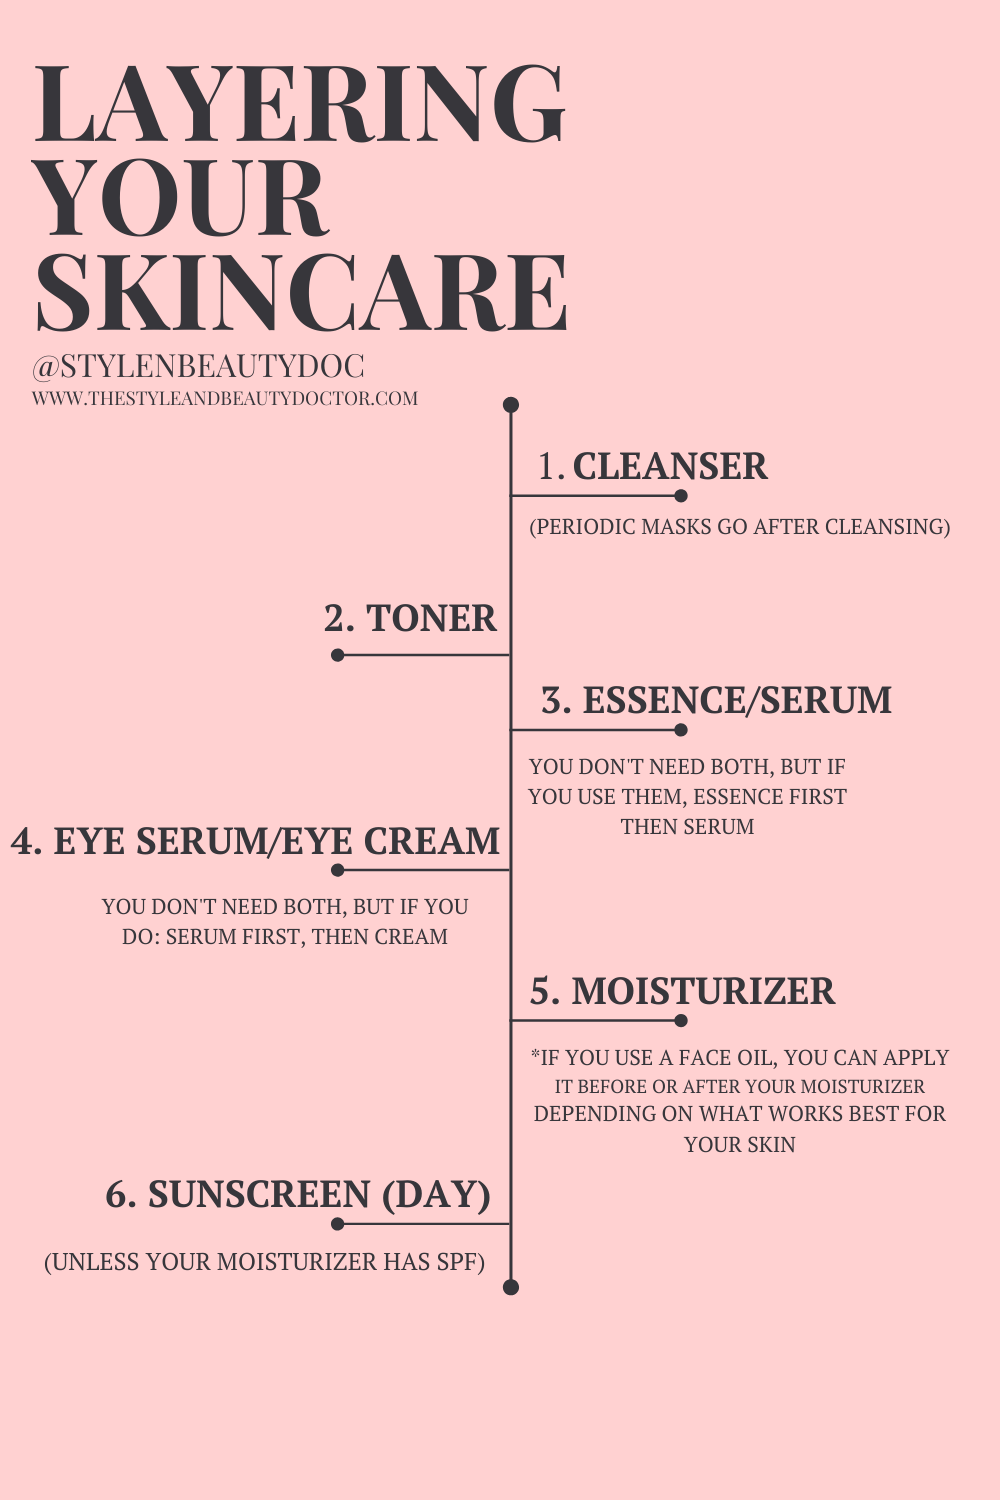 How To Layer Your Skincare The Order To Apply Your Products In 2020 Skin Care Routine Steps Skin Care Order Skin Facts